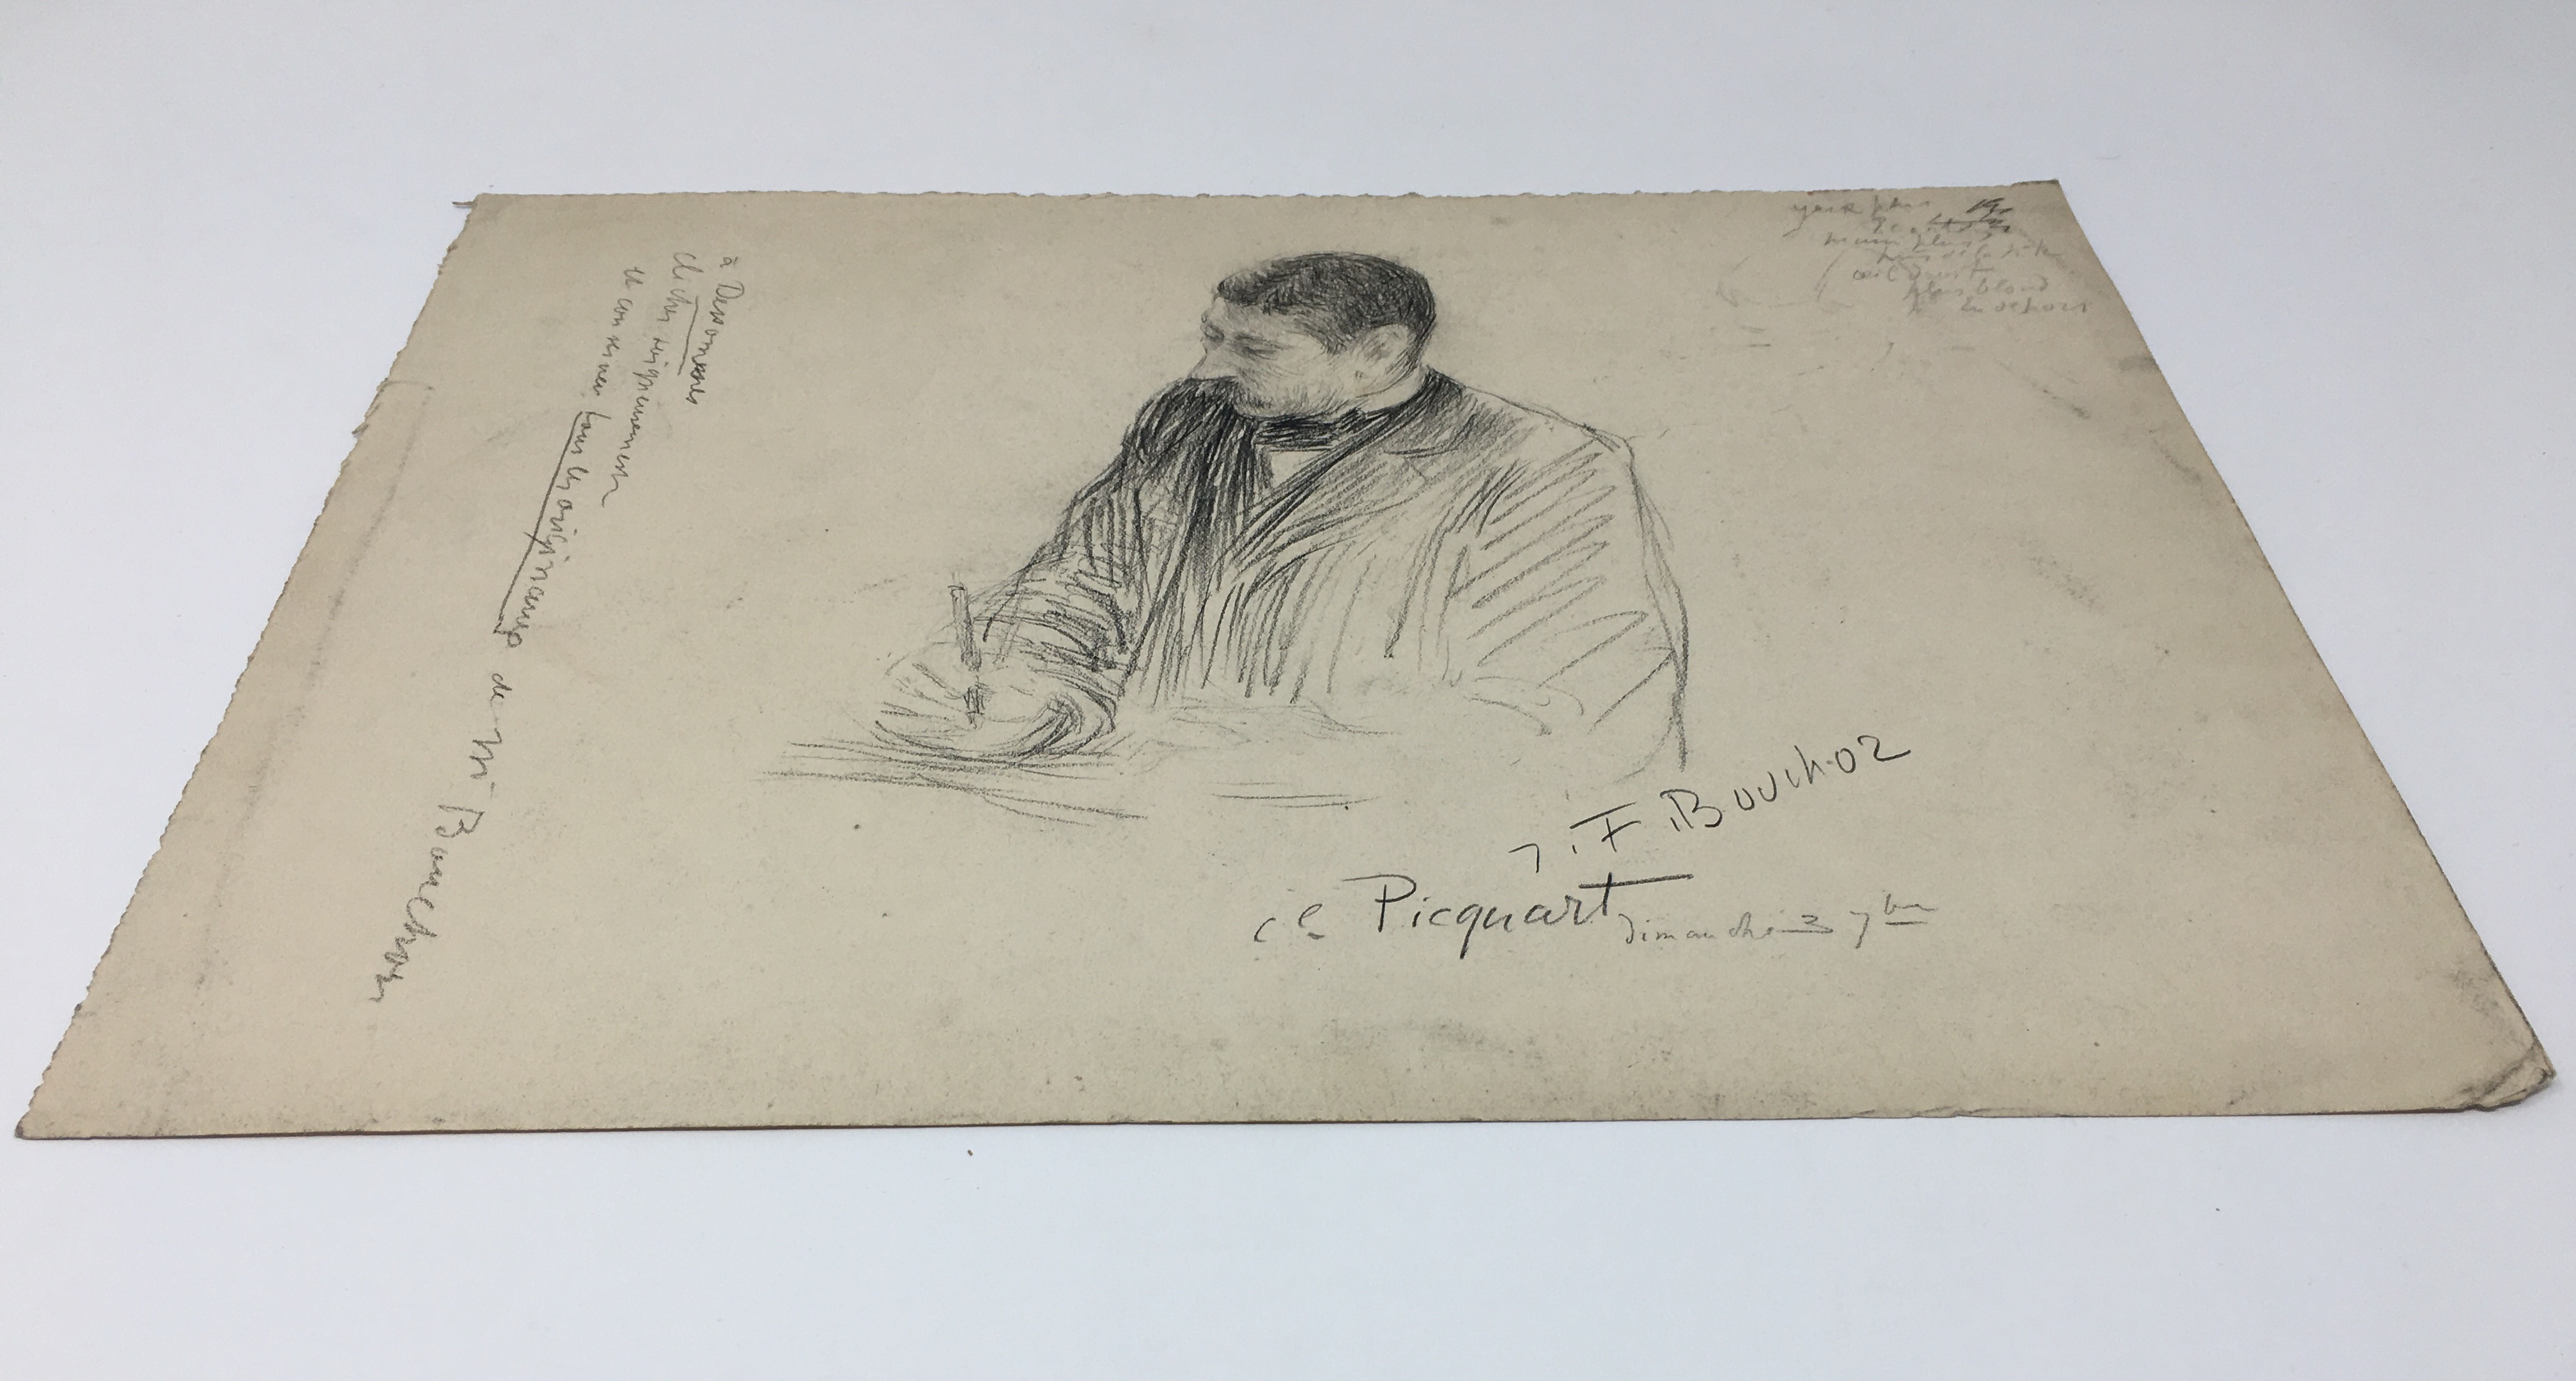 J'Accuse Newspaper, Emile Zola Quote, Signed Dreyfus Portrait, Rare Trial Drawings & Schwartzkoppen - Image 38 of 74